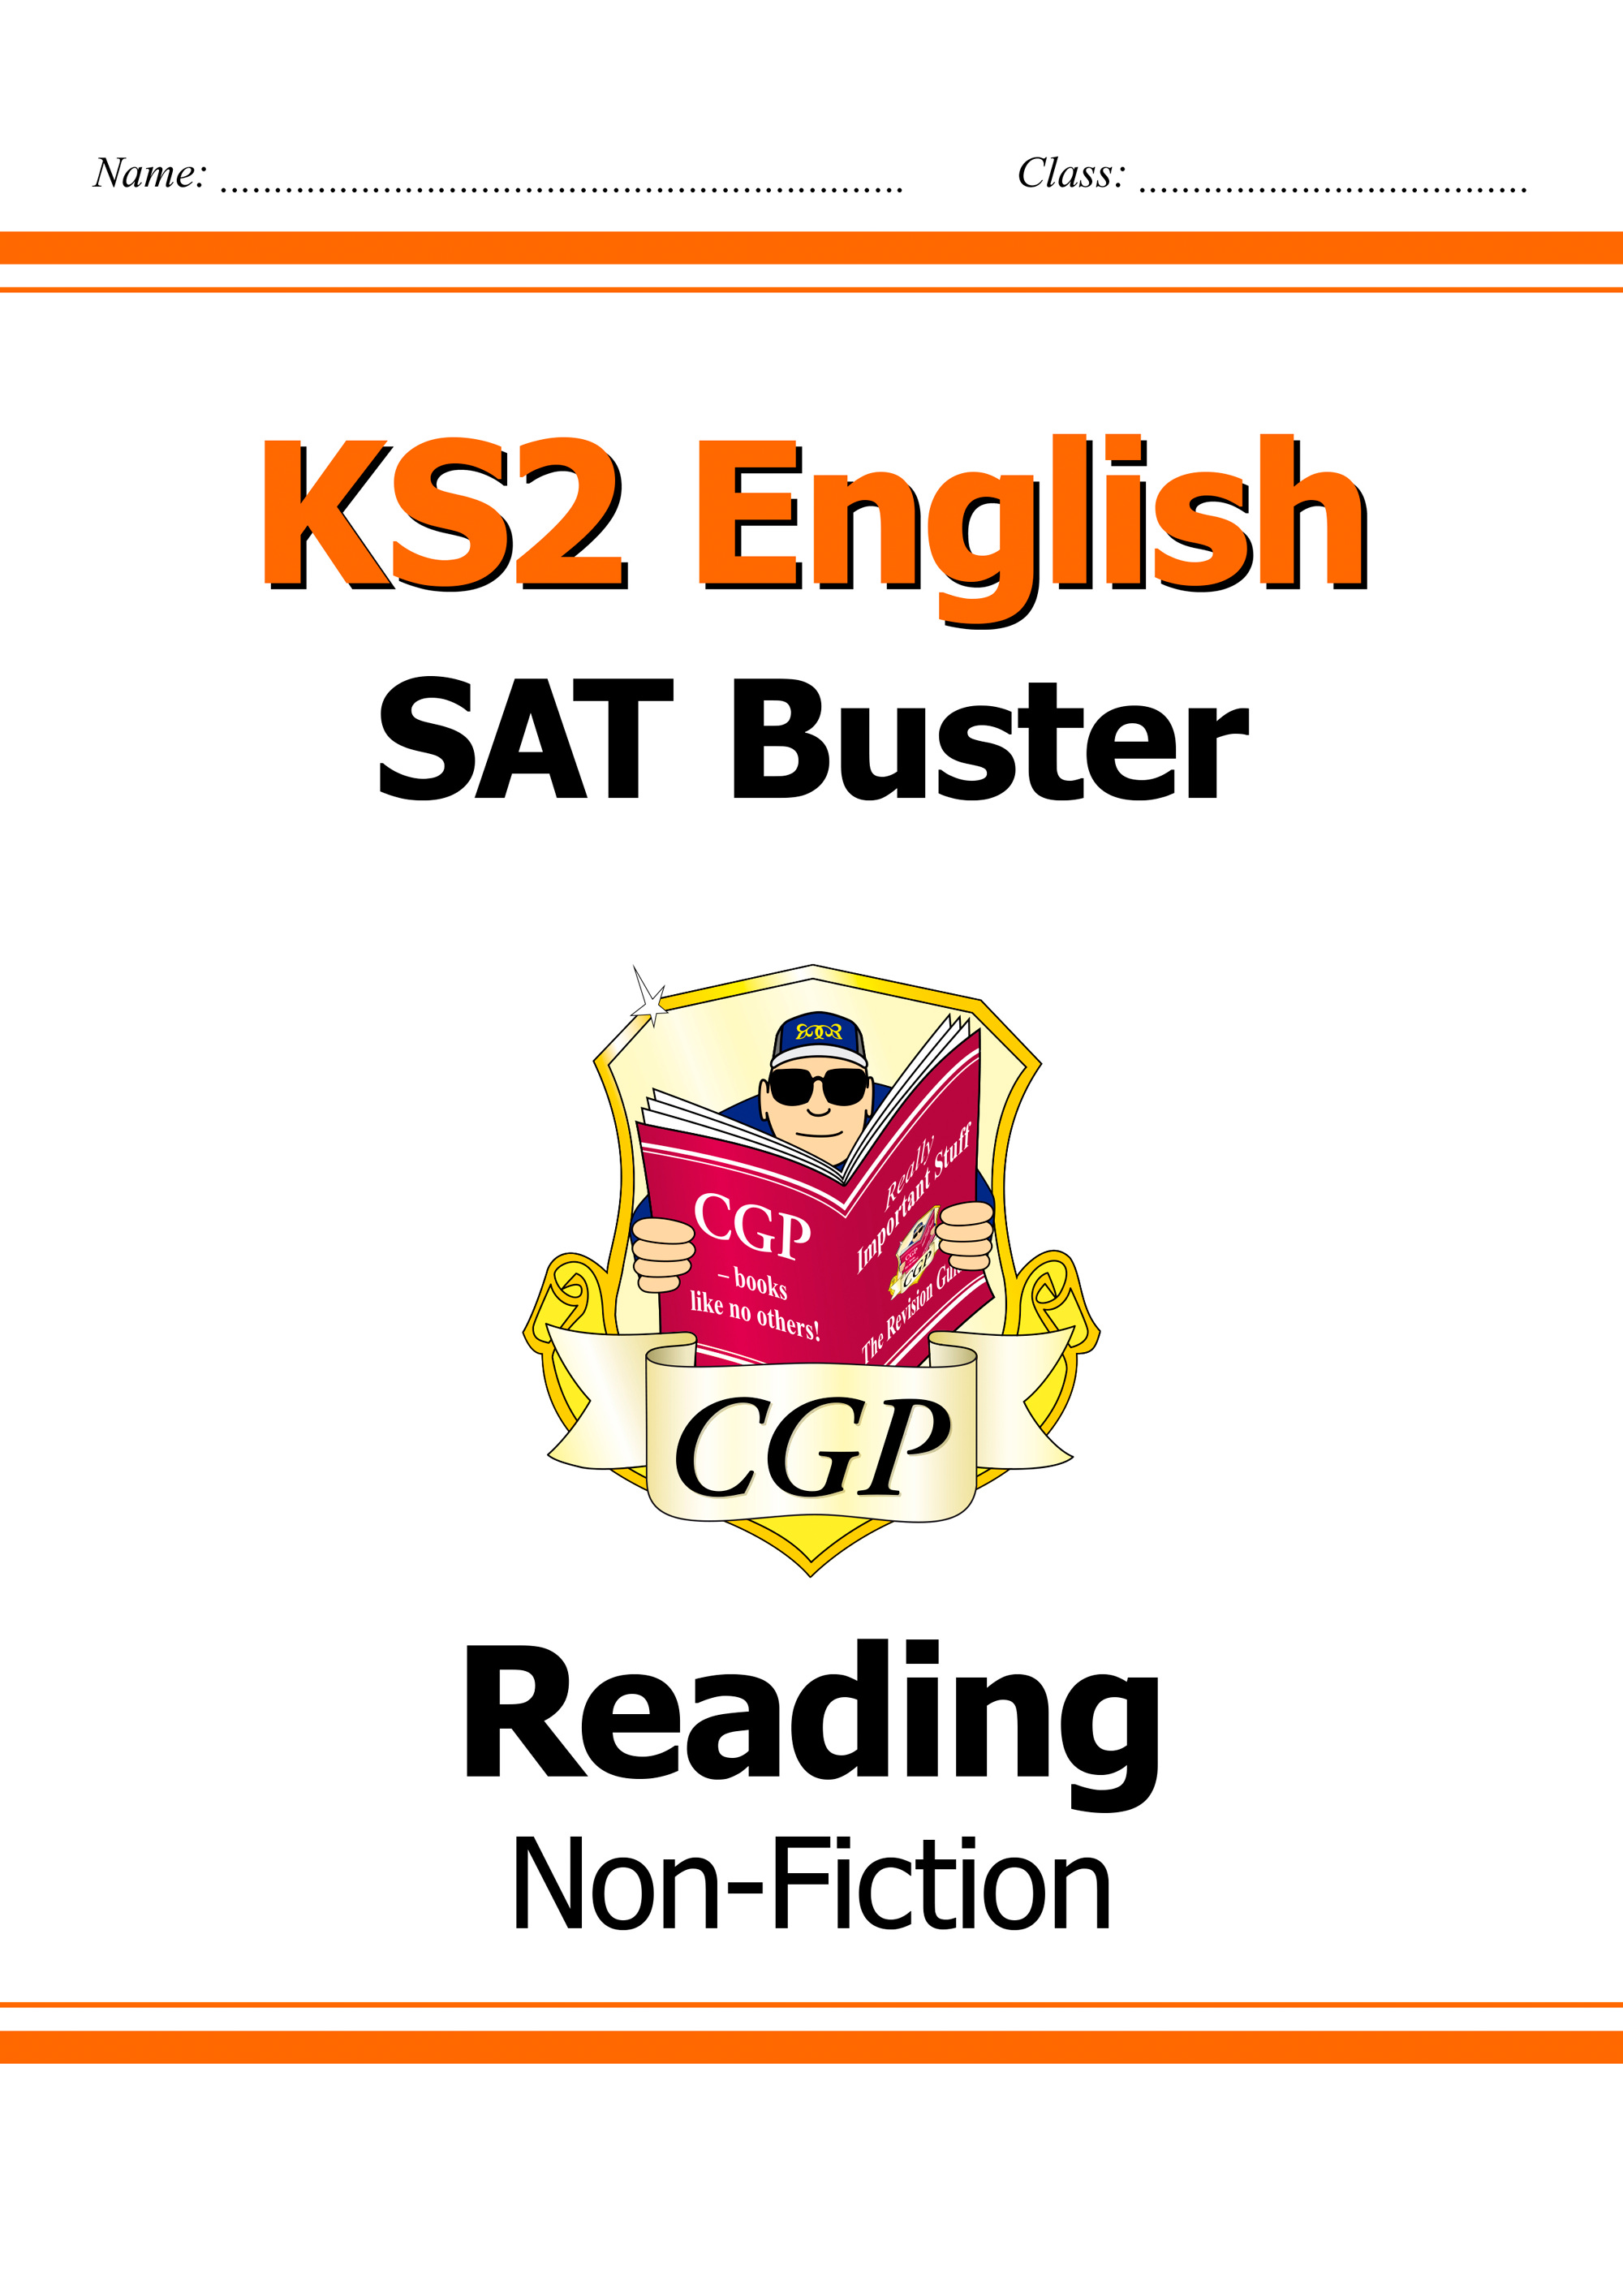 E6FRN21DK - New KS2 English Reading SAT Buster: Non-Fiction (for tests in 2018 and beyond)